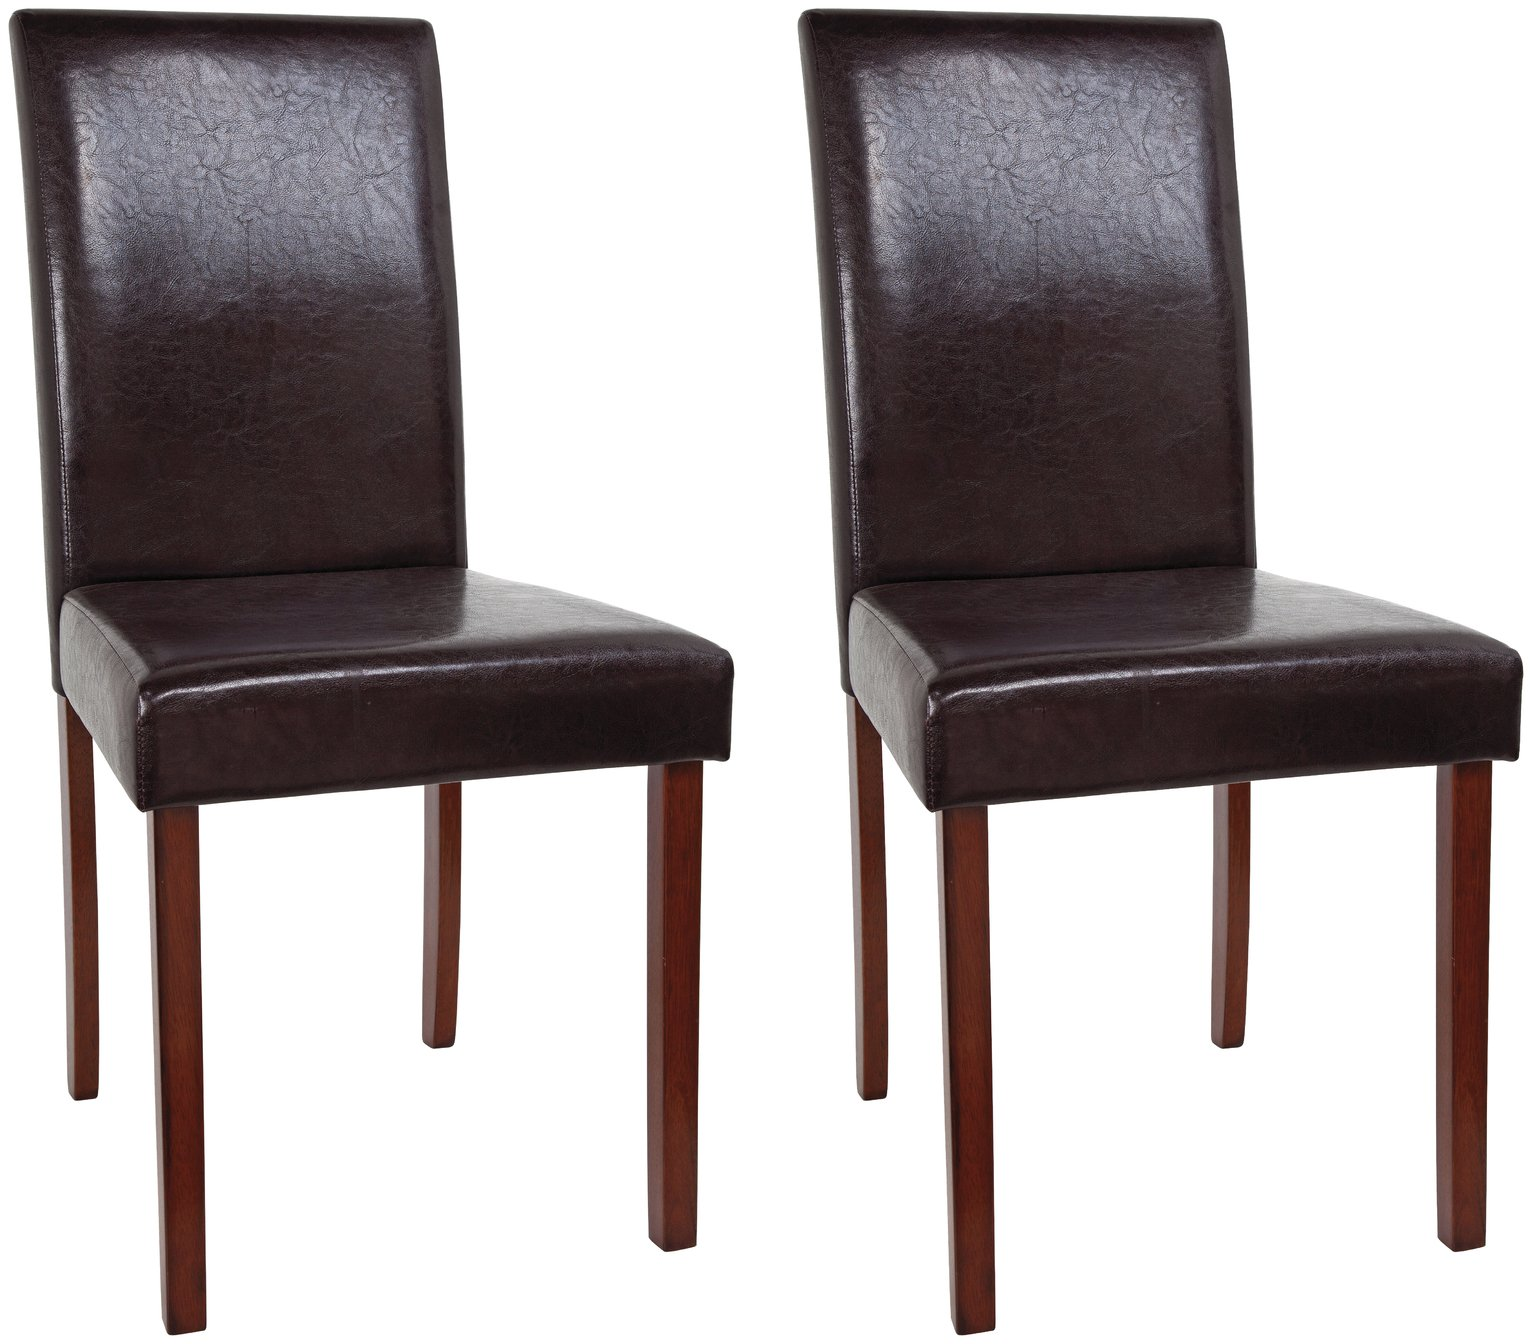 dining chair covers argos modern reception chairs for office buy thomas the tank engine and seat pads at